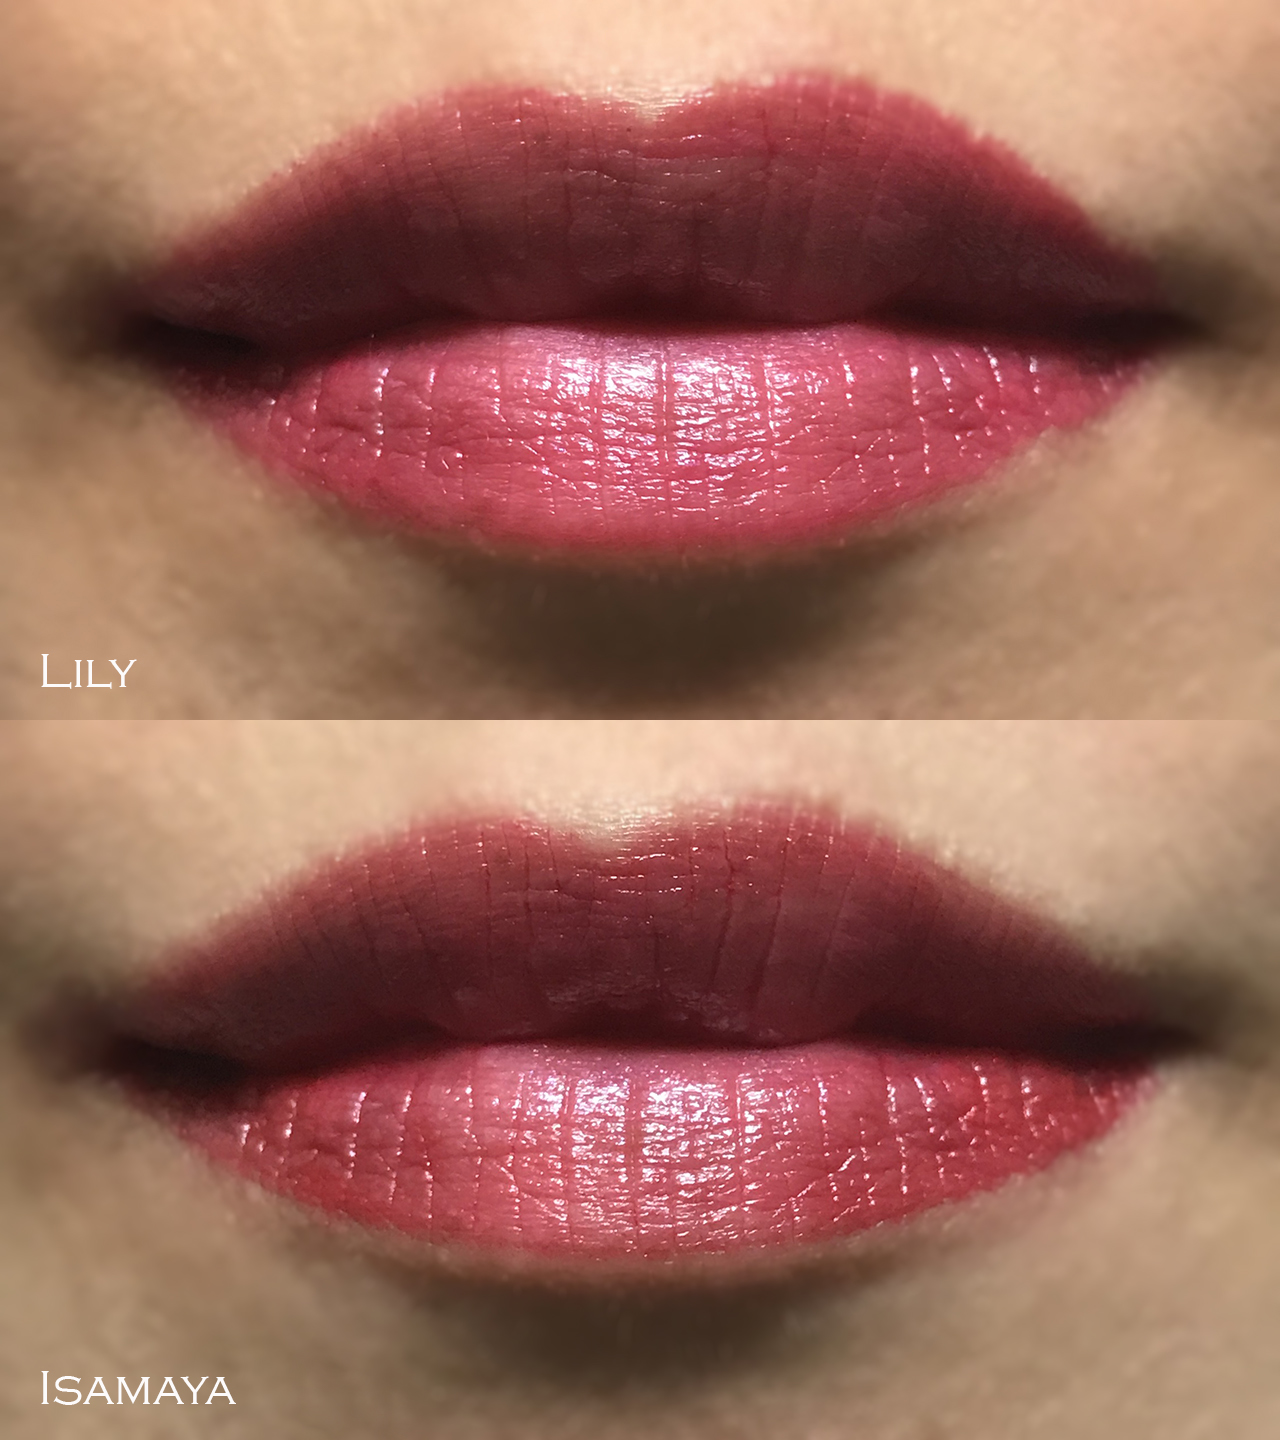 Tom Ford Boys and Girls layered lip effects